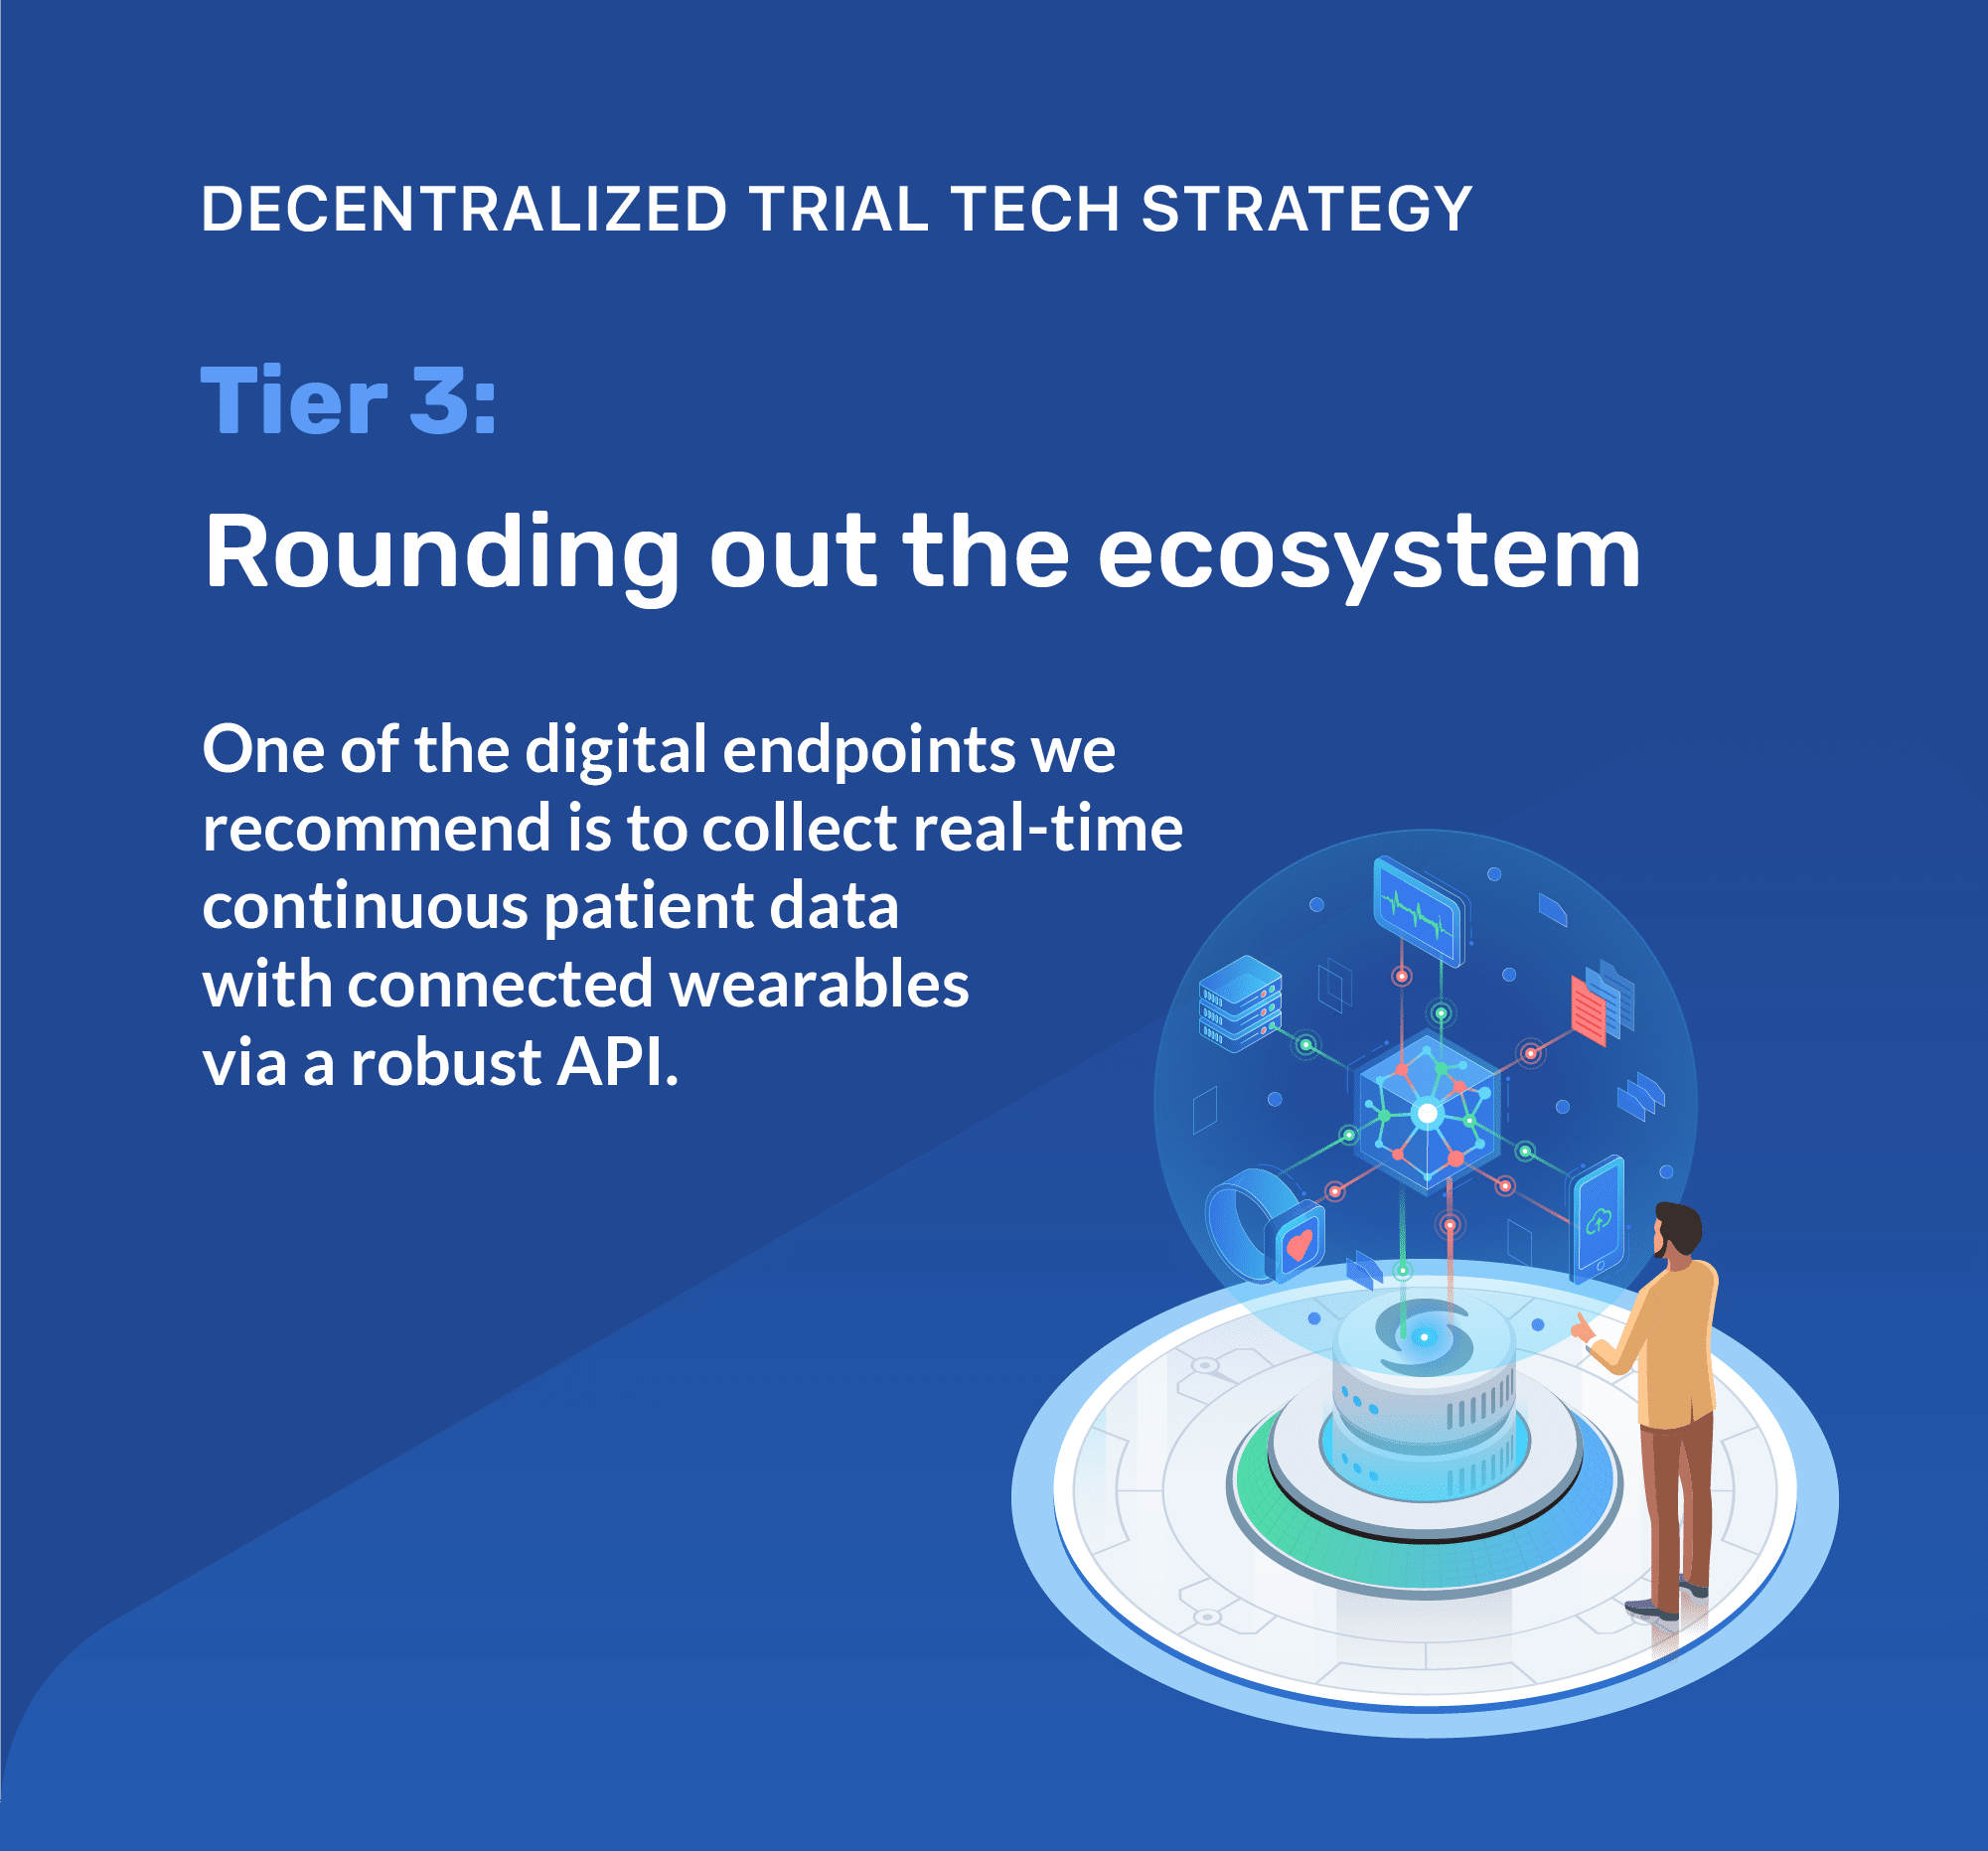 Tier 3 Clinical Trial tech strategy